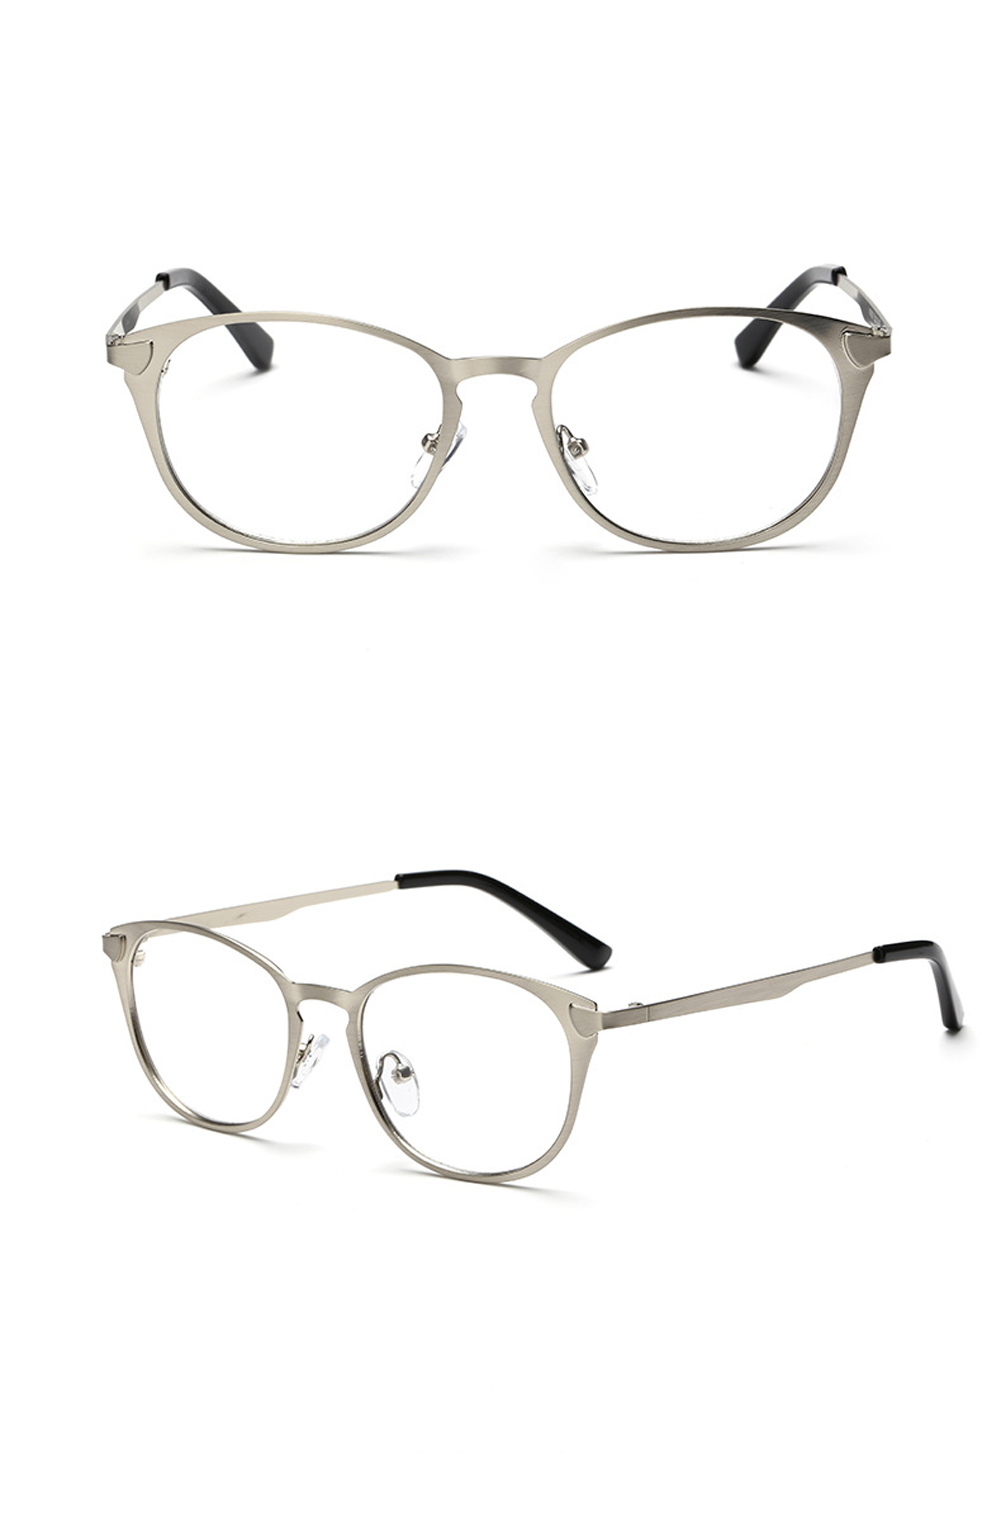 E Retro small frame glasses metal round frame glasses without ...